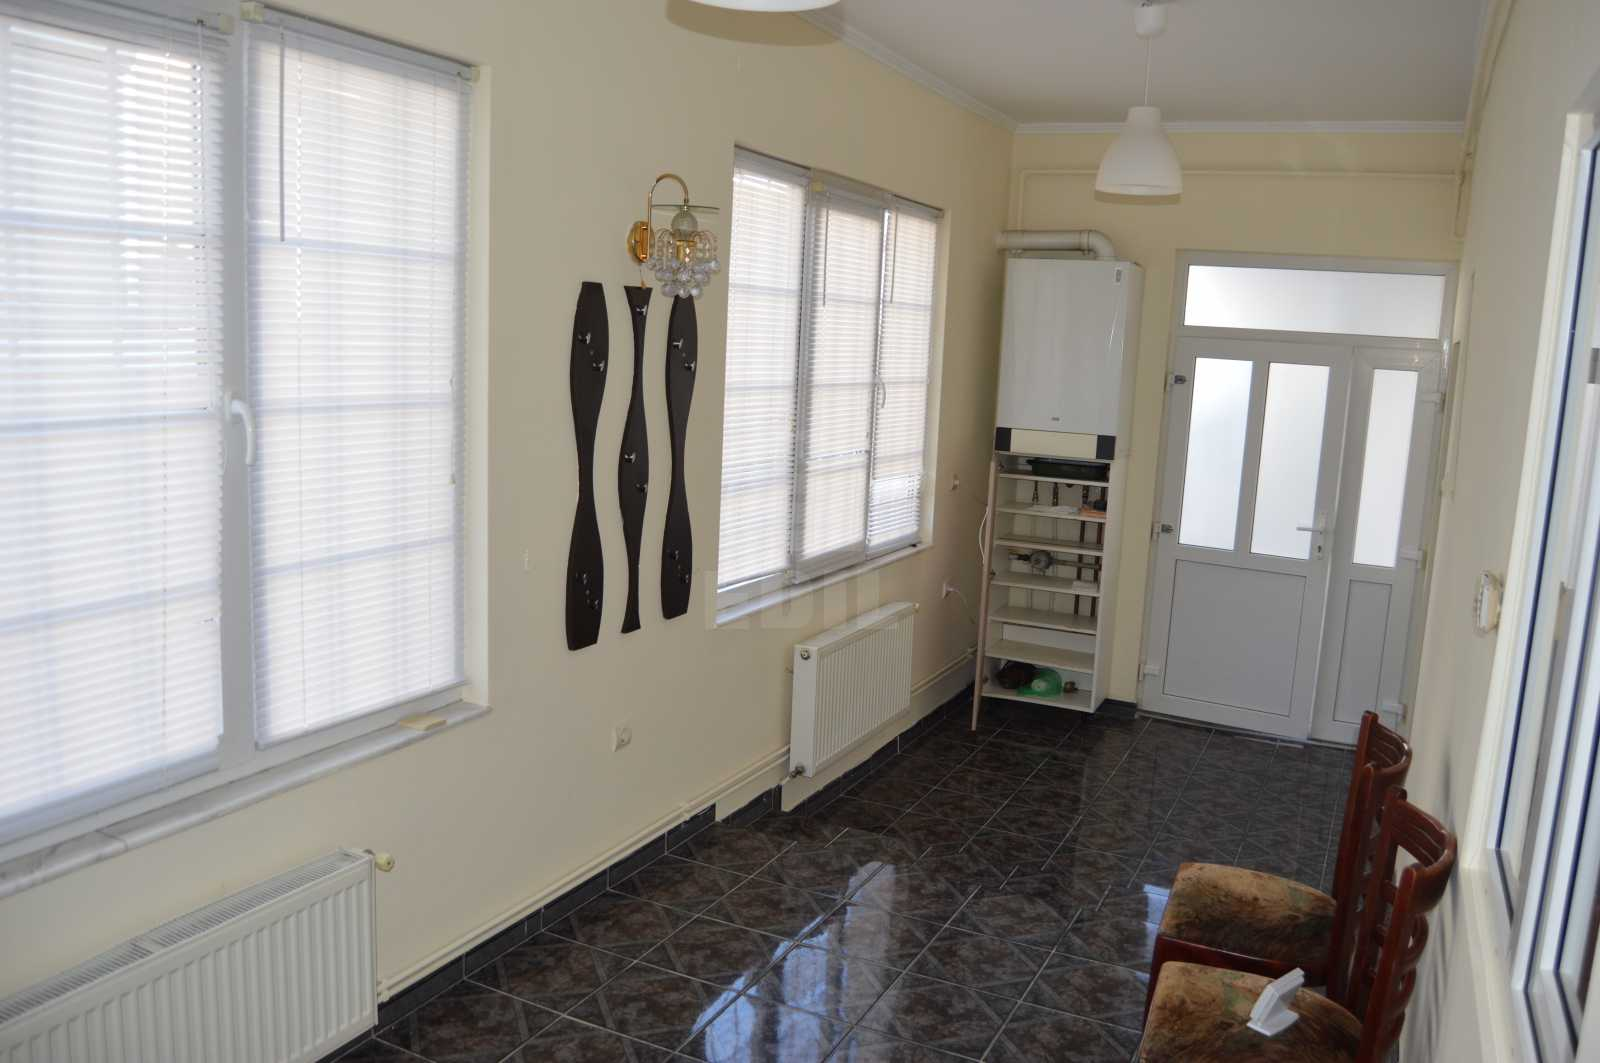 House for sale 3 rooms, CACJ284246-11